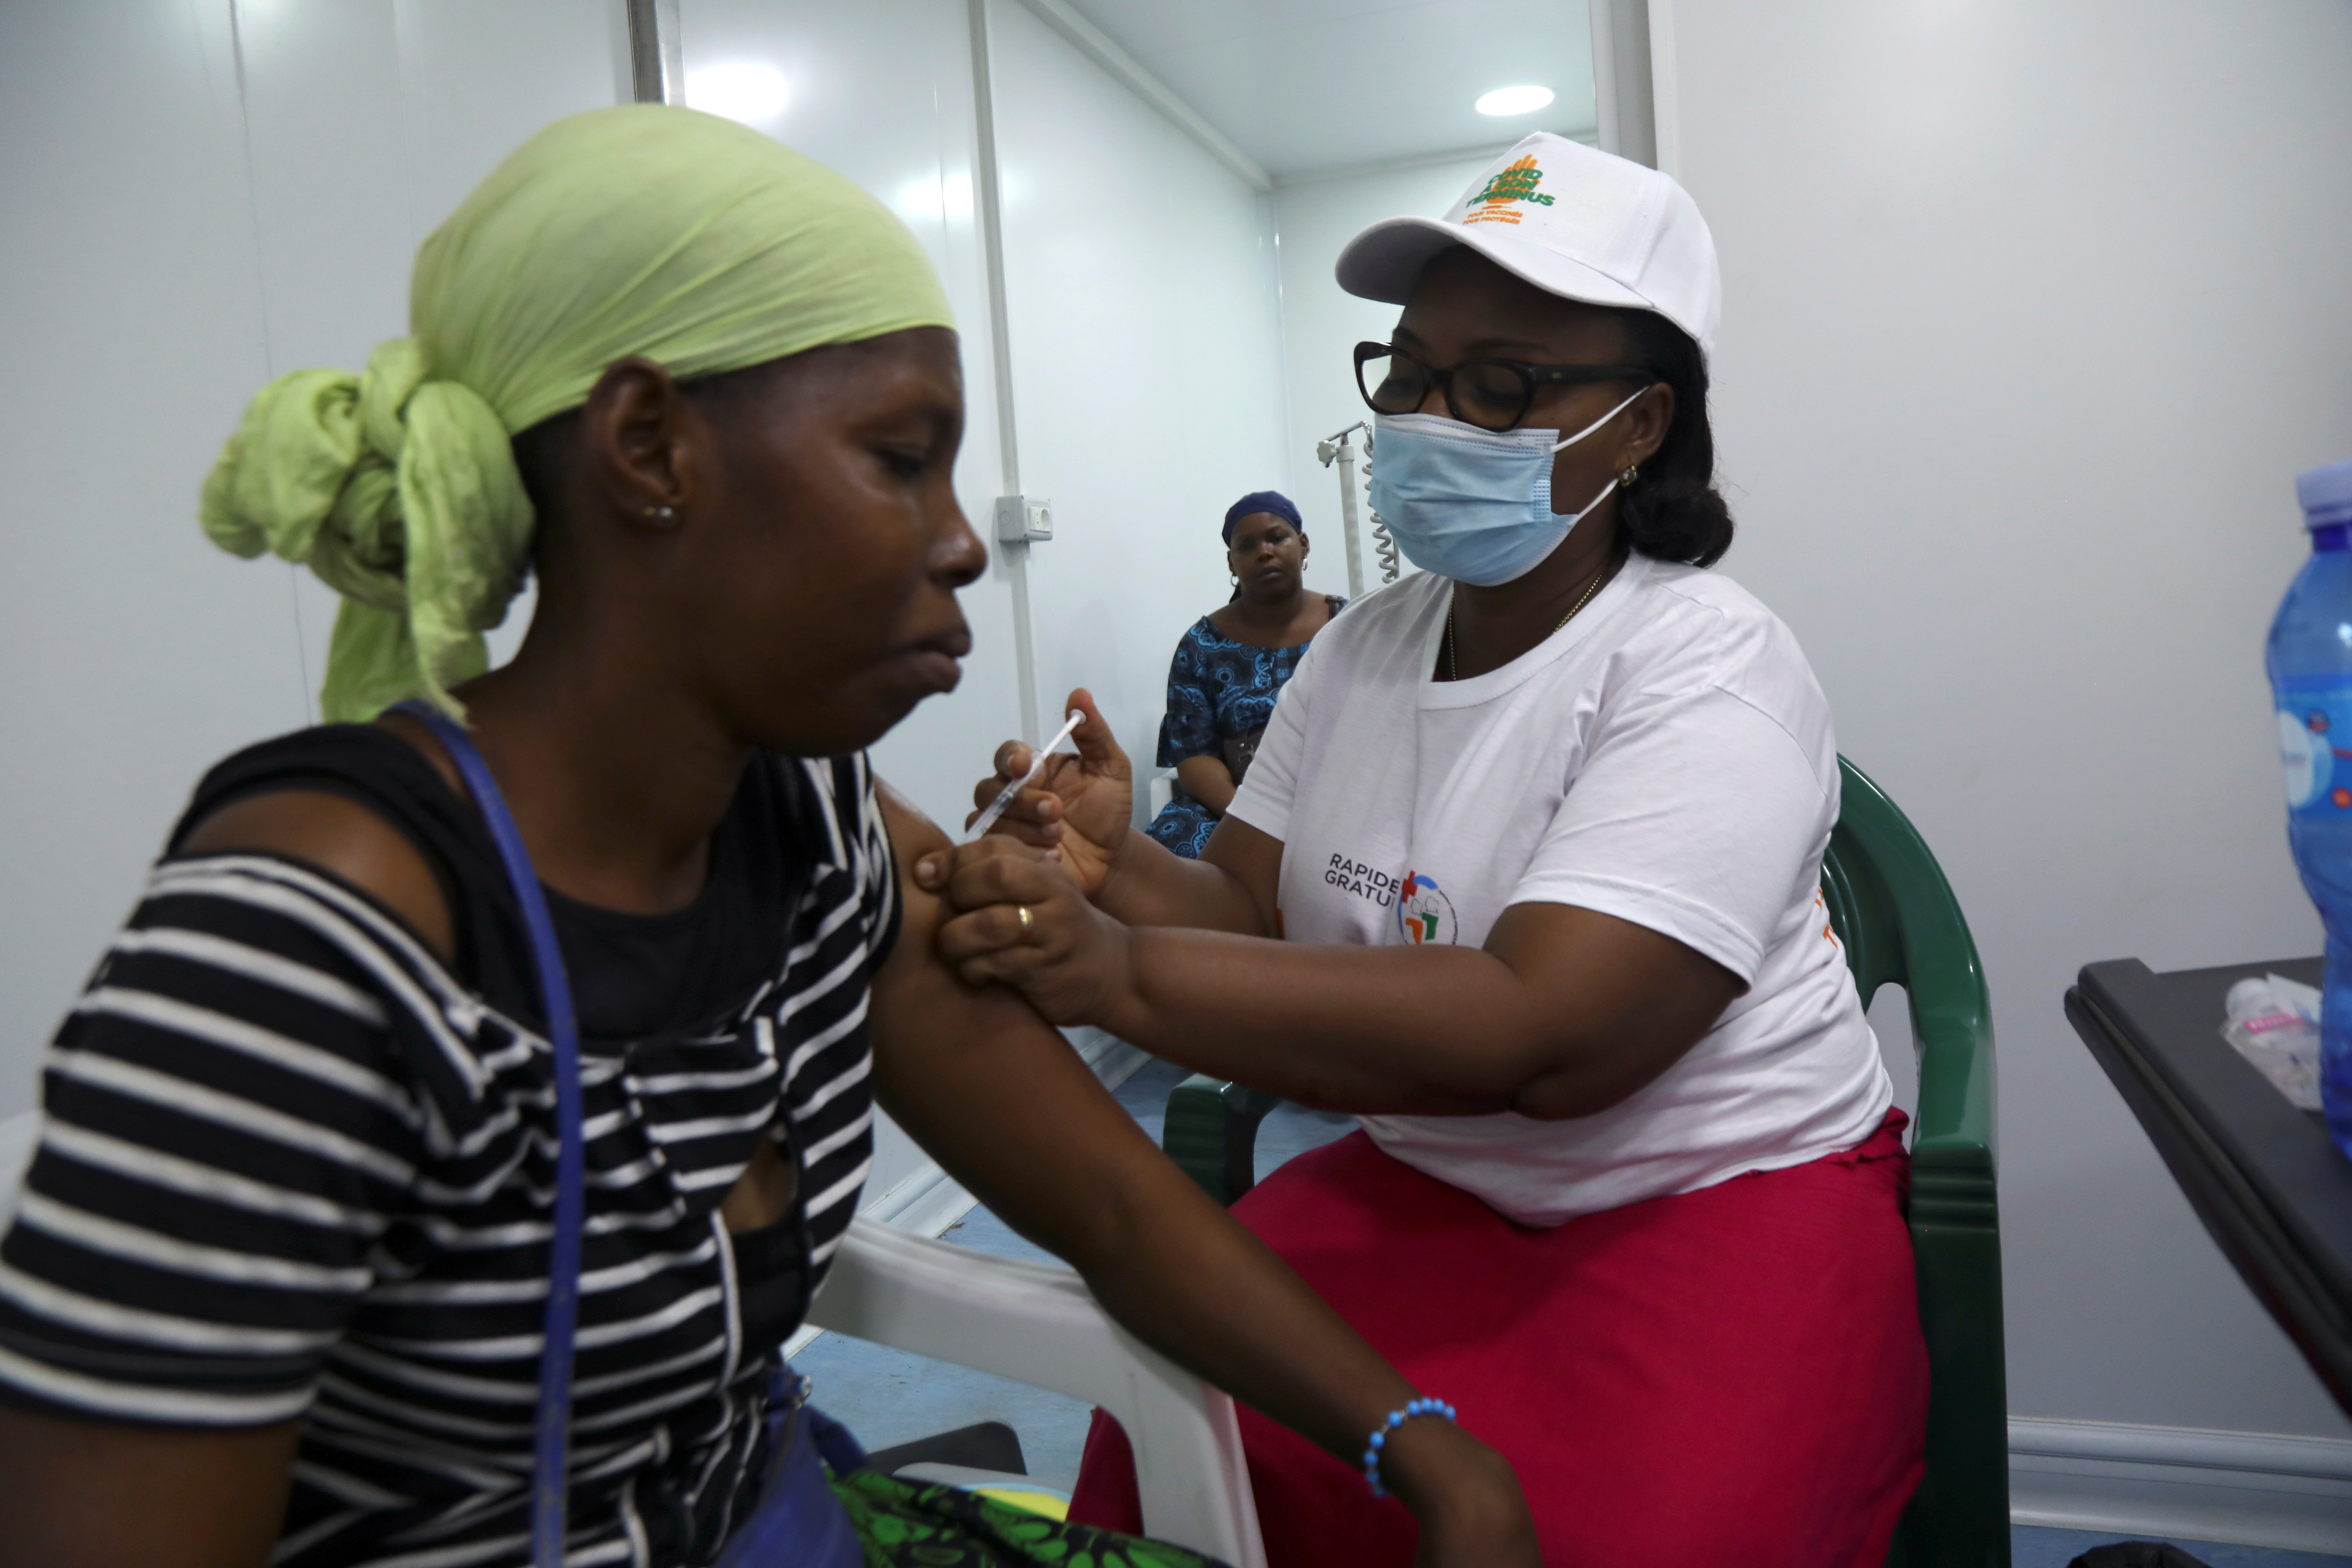 A woman receives a vaccination against the coronavirus disease (COVID-19) during a prevention campaign at a mobile vaccination center in Abidjan, Ivory Coast July 5, 2021. REUTERS/Luc Gnago - RC2EEO9R7GSL